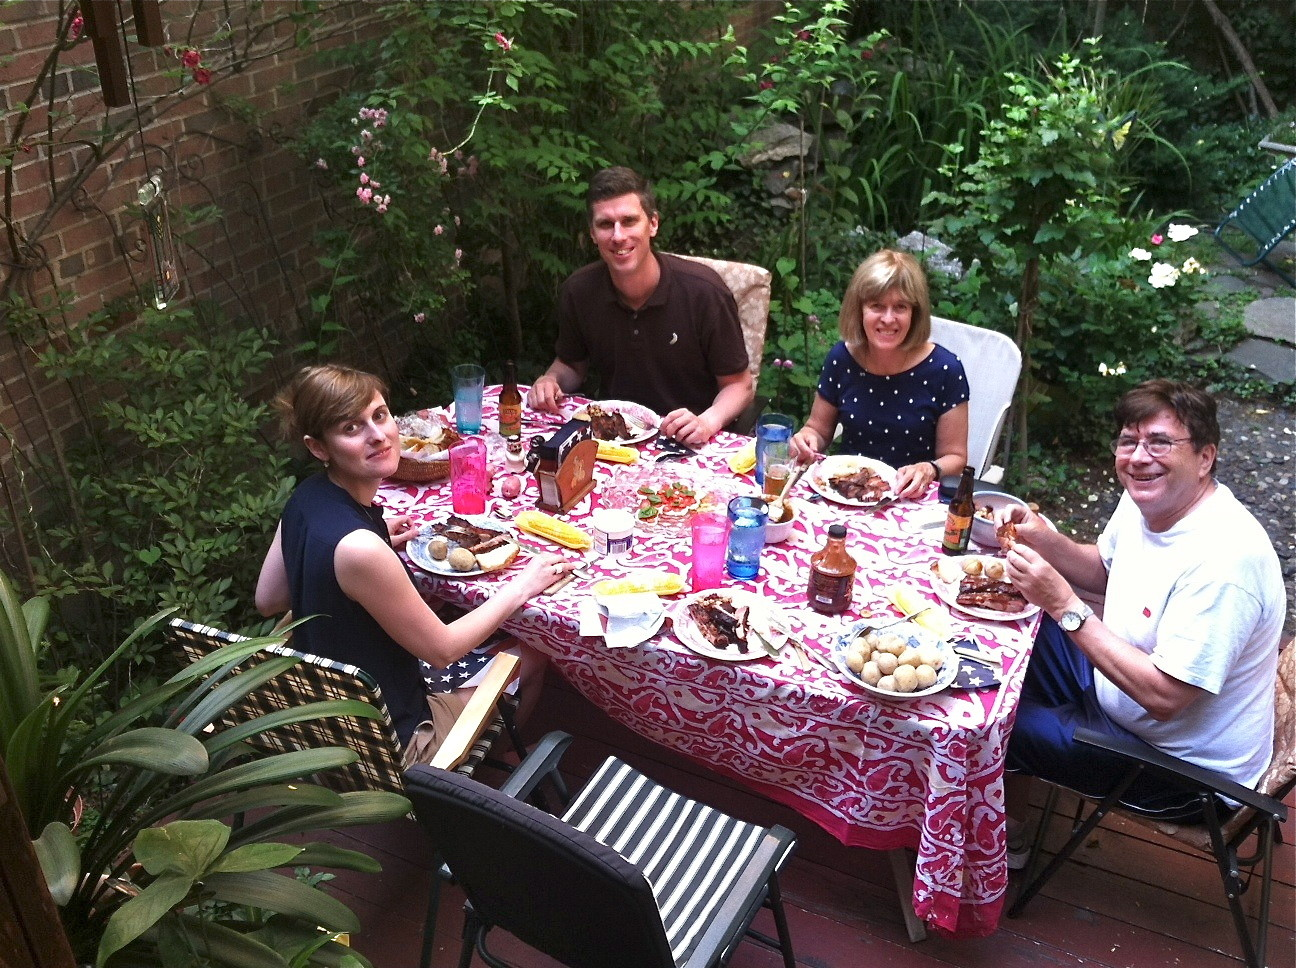 Anna Groner, Patrick, Nancy Hynes, John Wagner Barbecued Pork Ribs and Corn 6-24-14